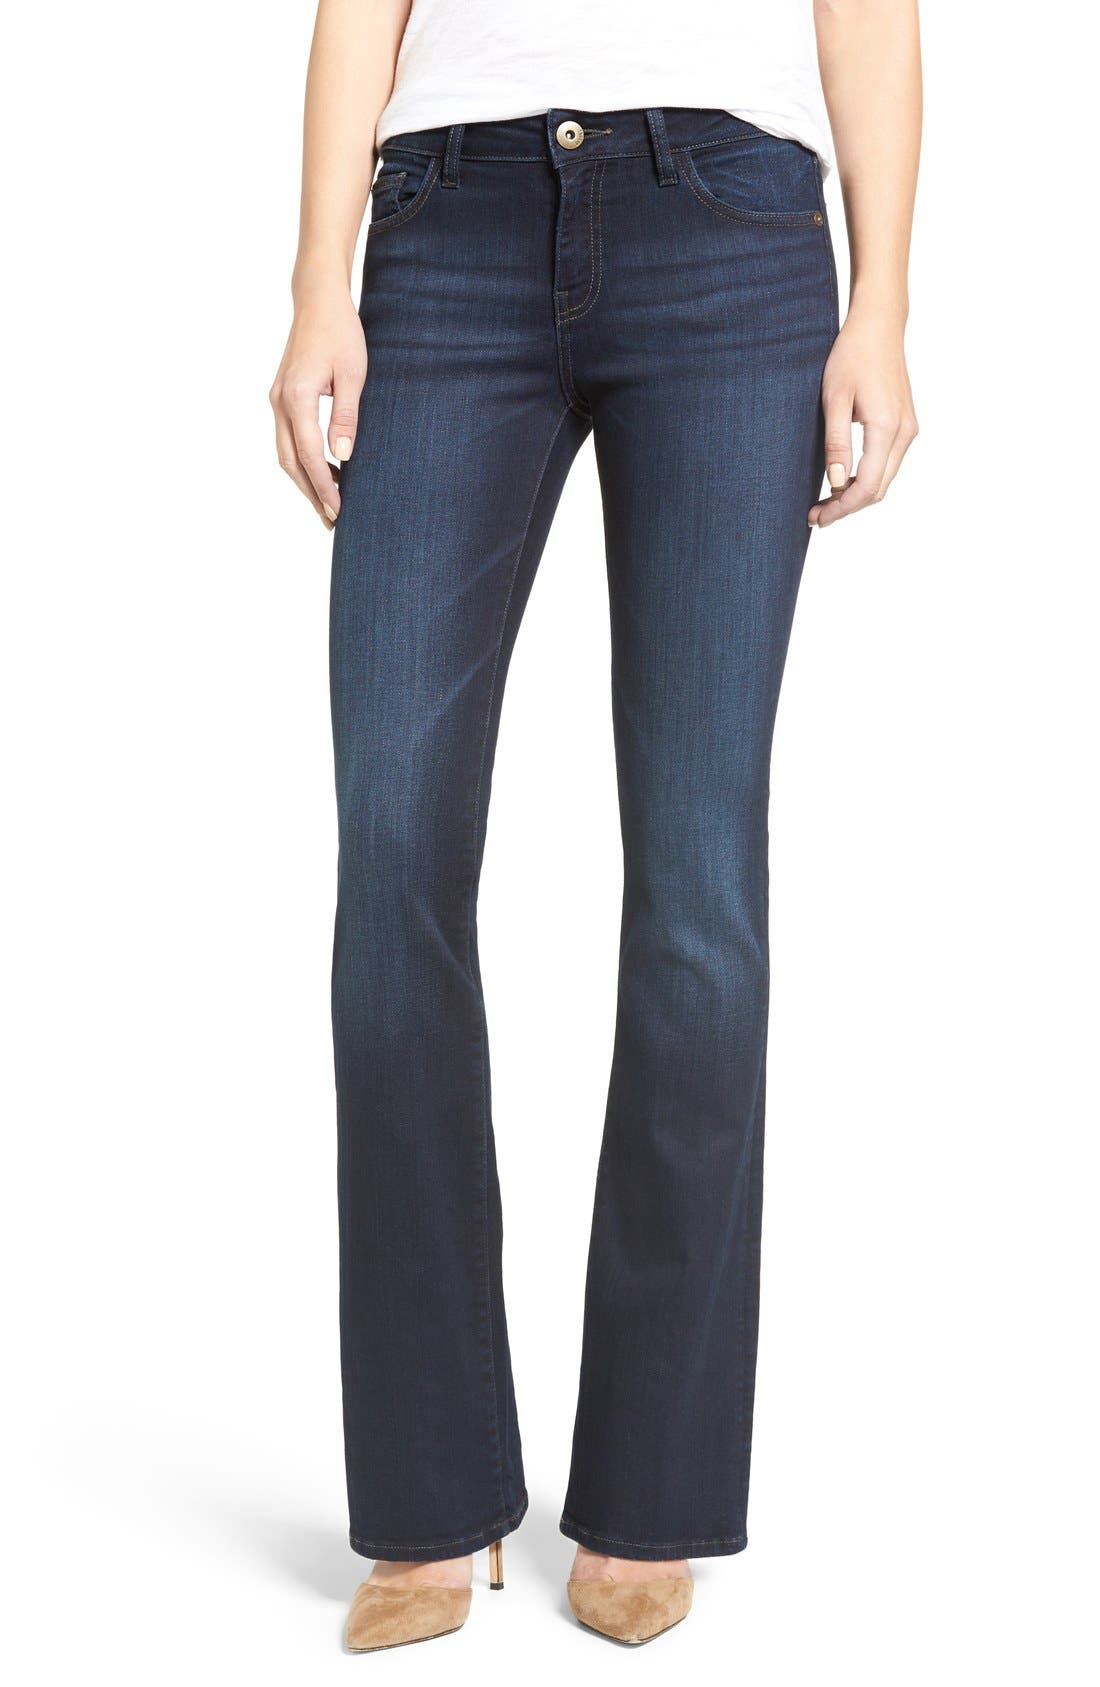 Alternate Image 1 Selected - DL1961 'Bridget 33' Bootcut Jeans (Peak)